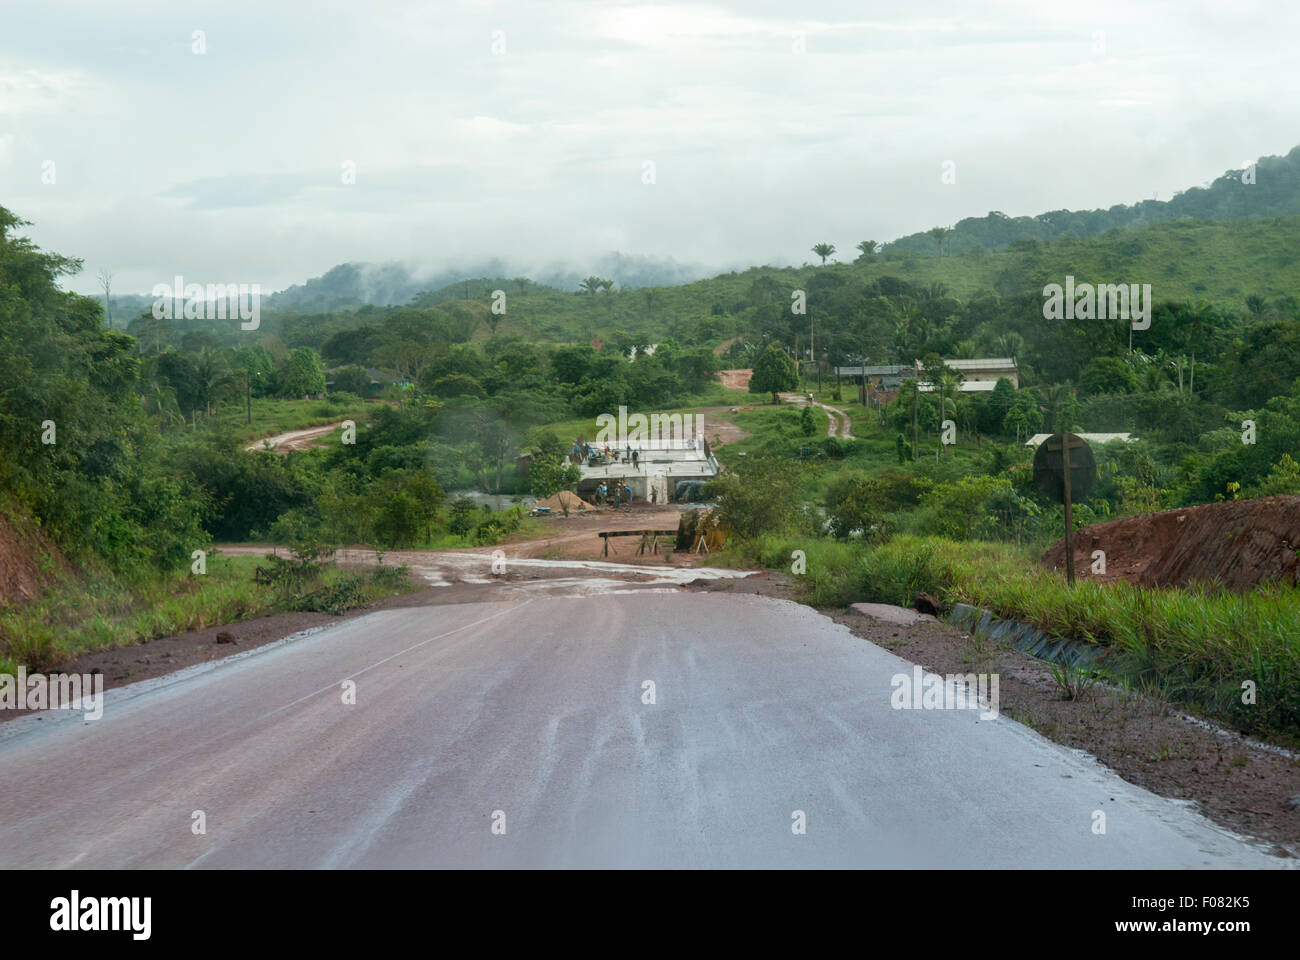 Amazon, Brazil. BR 163 highway, end of Tarmac road. - Stock Image